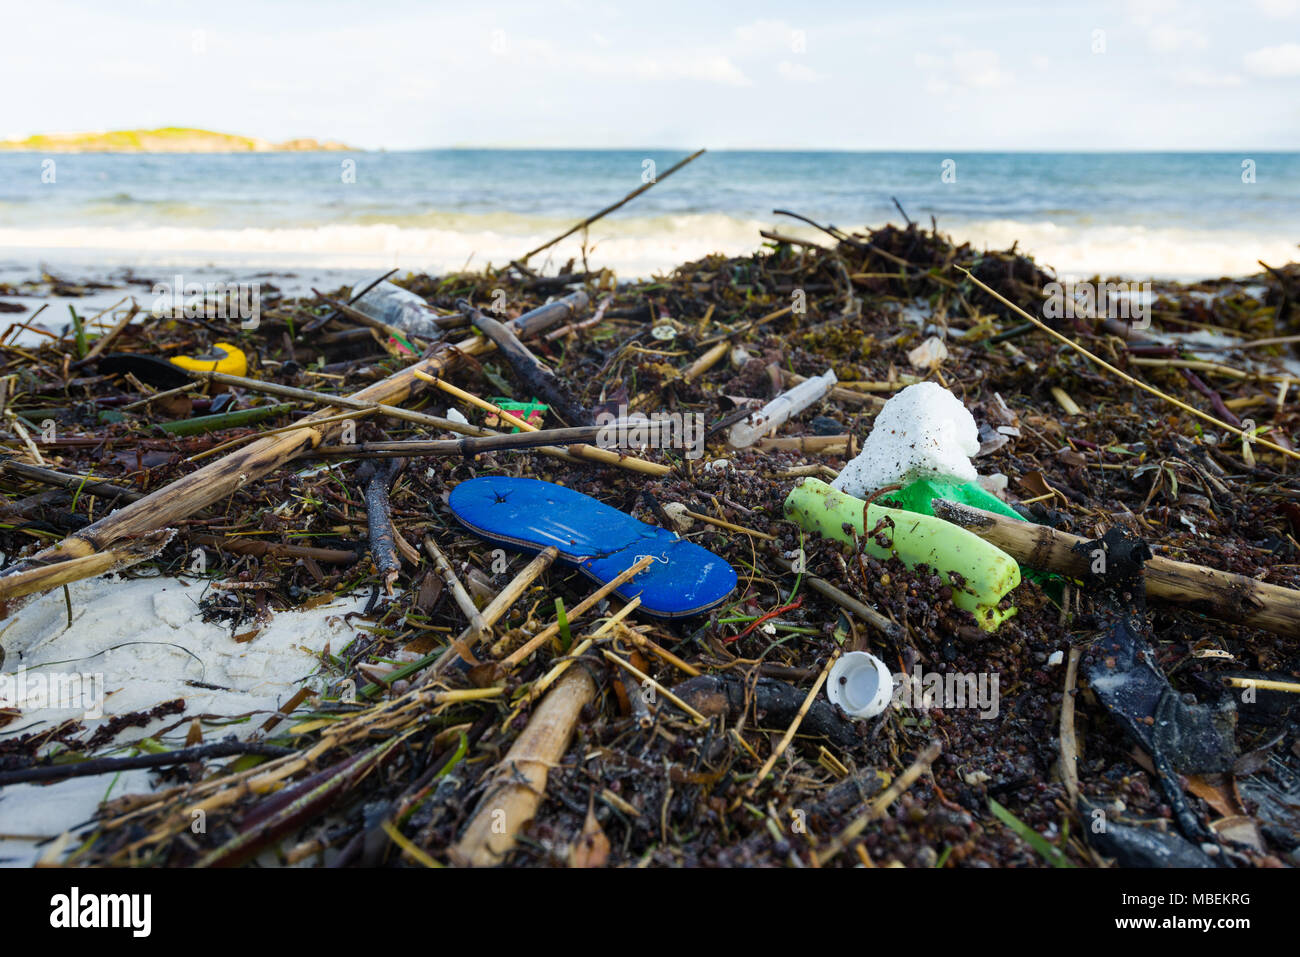 Plastic waste lies washed up on the shore of a white sand beach - Stock Image